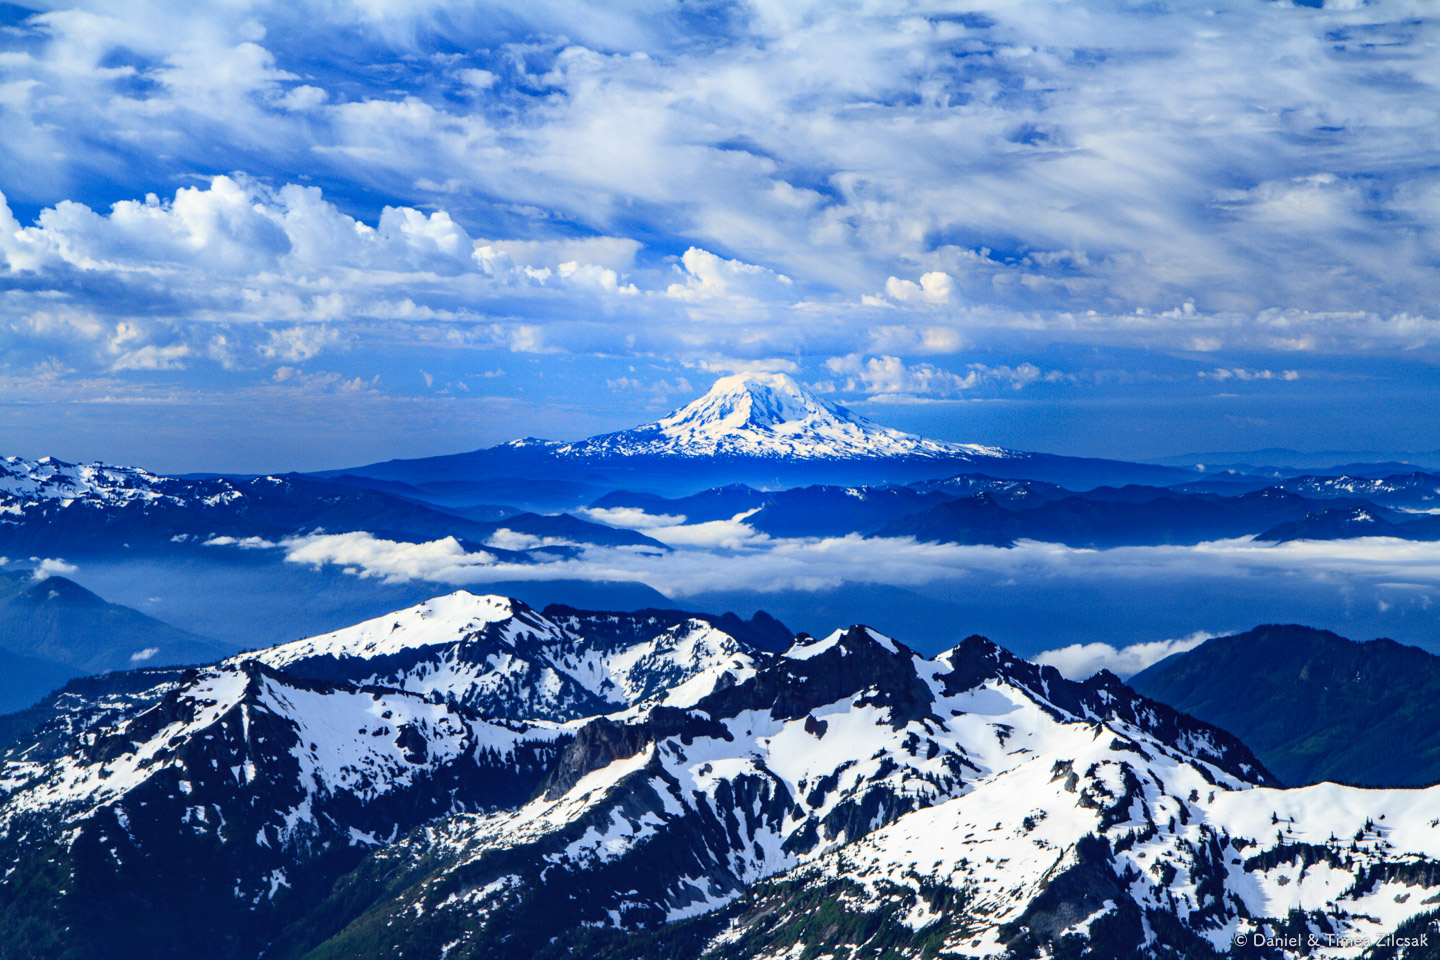 Mt. Adams 12,281 ft.and the Tatoosh range seen from 9000 ft. en route to Camp Muir, Mount Rainier National Park